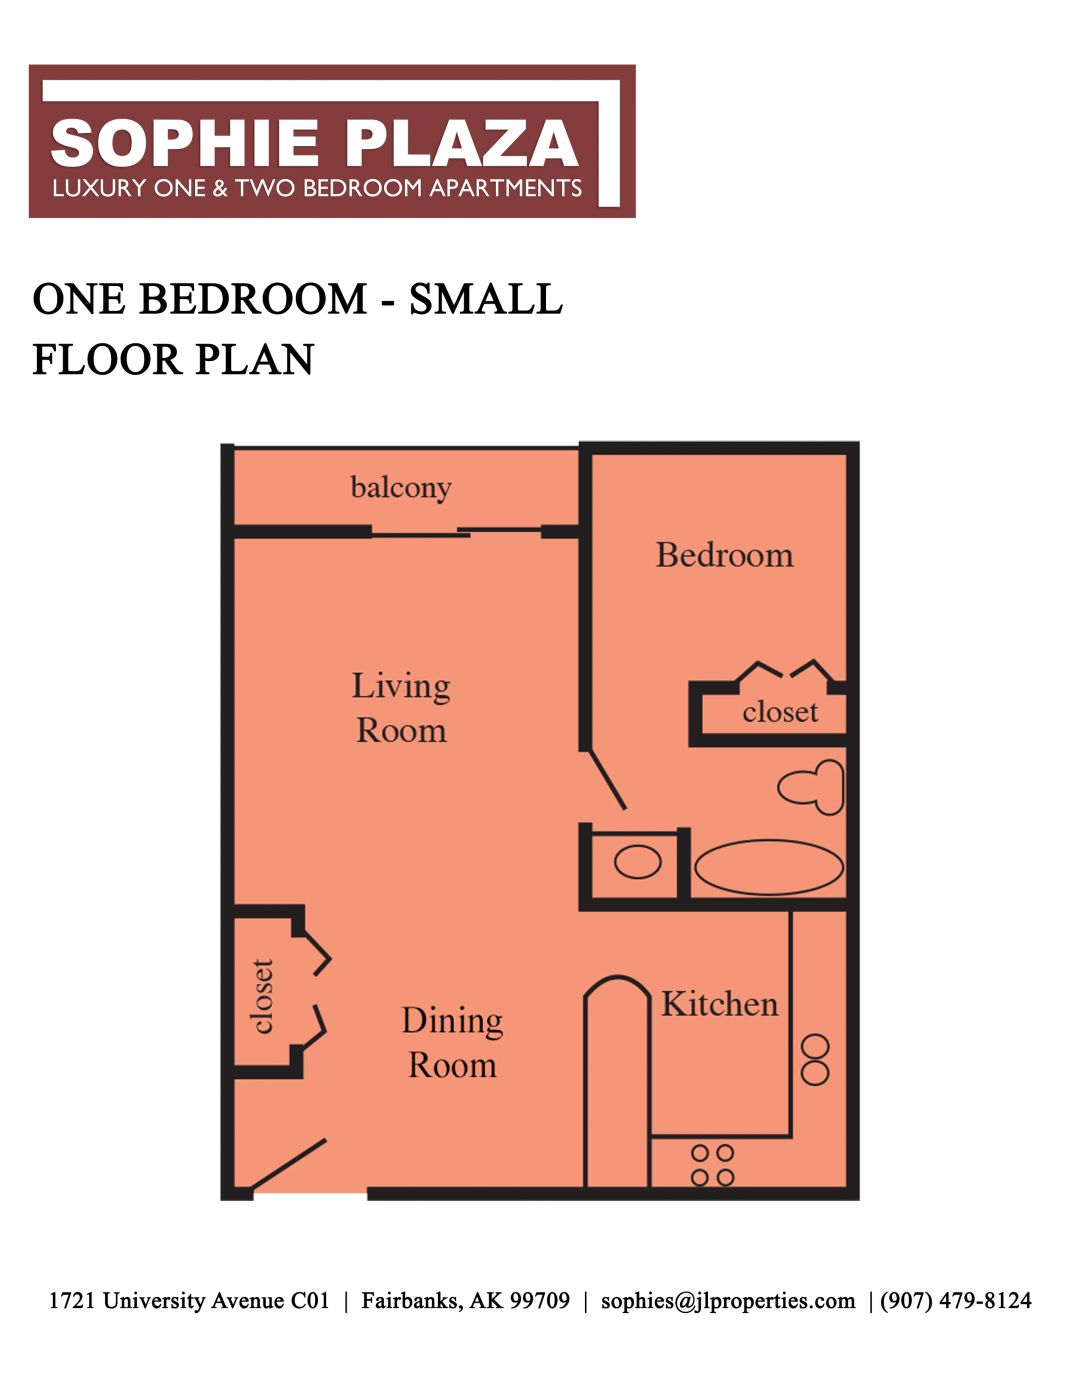 One Bedroom - Small